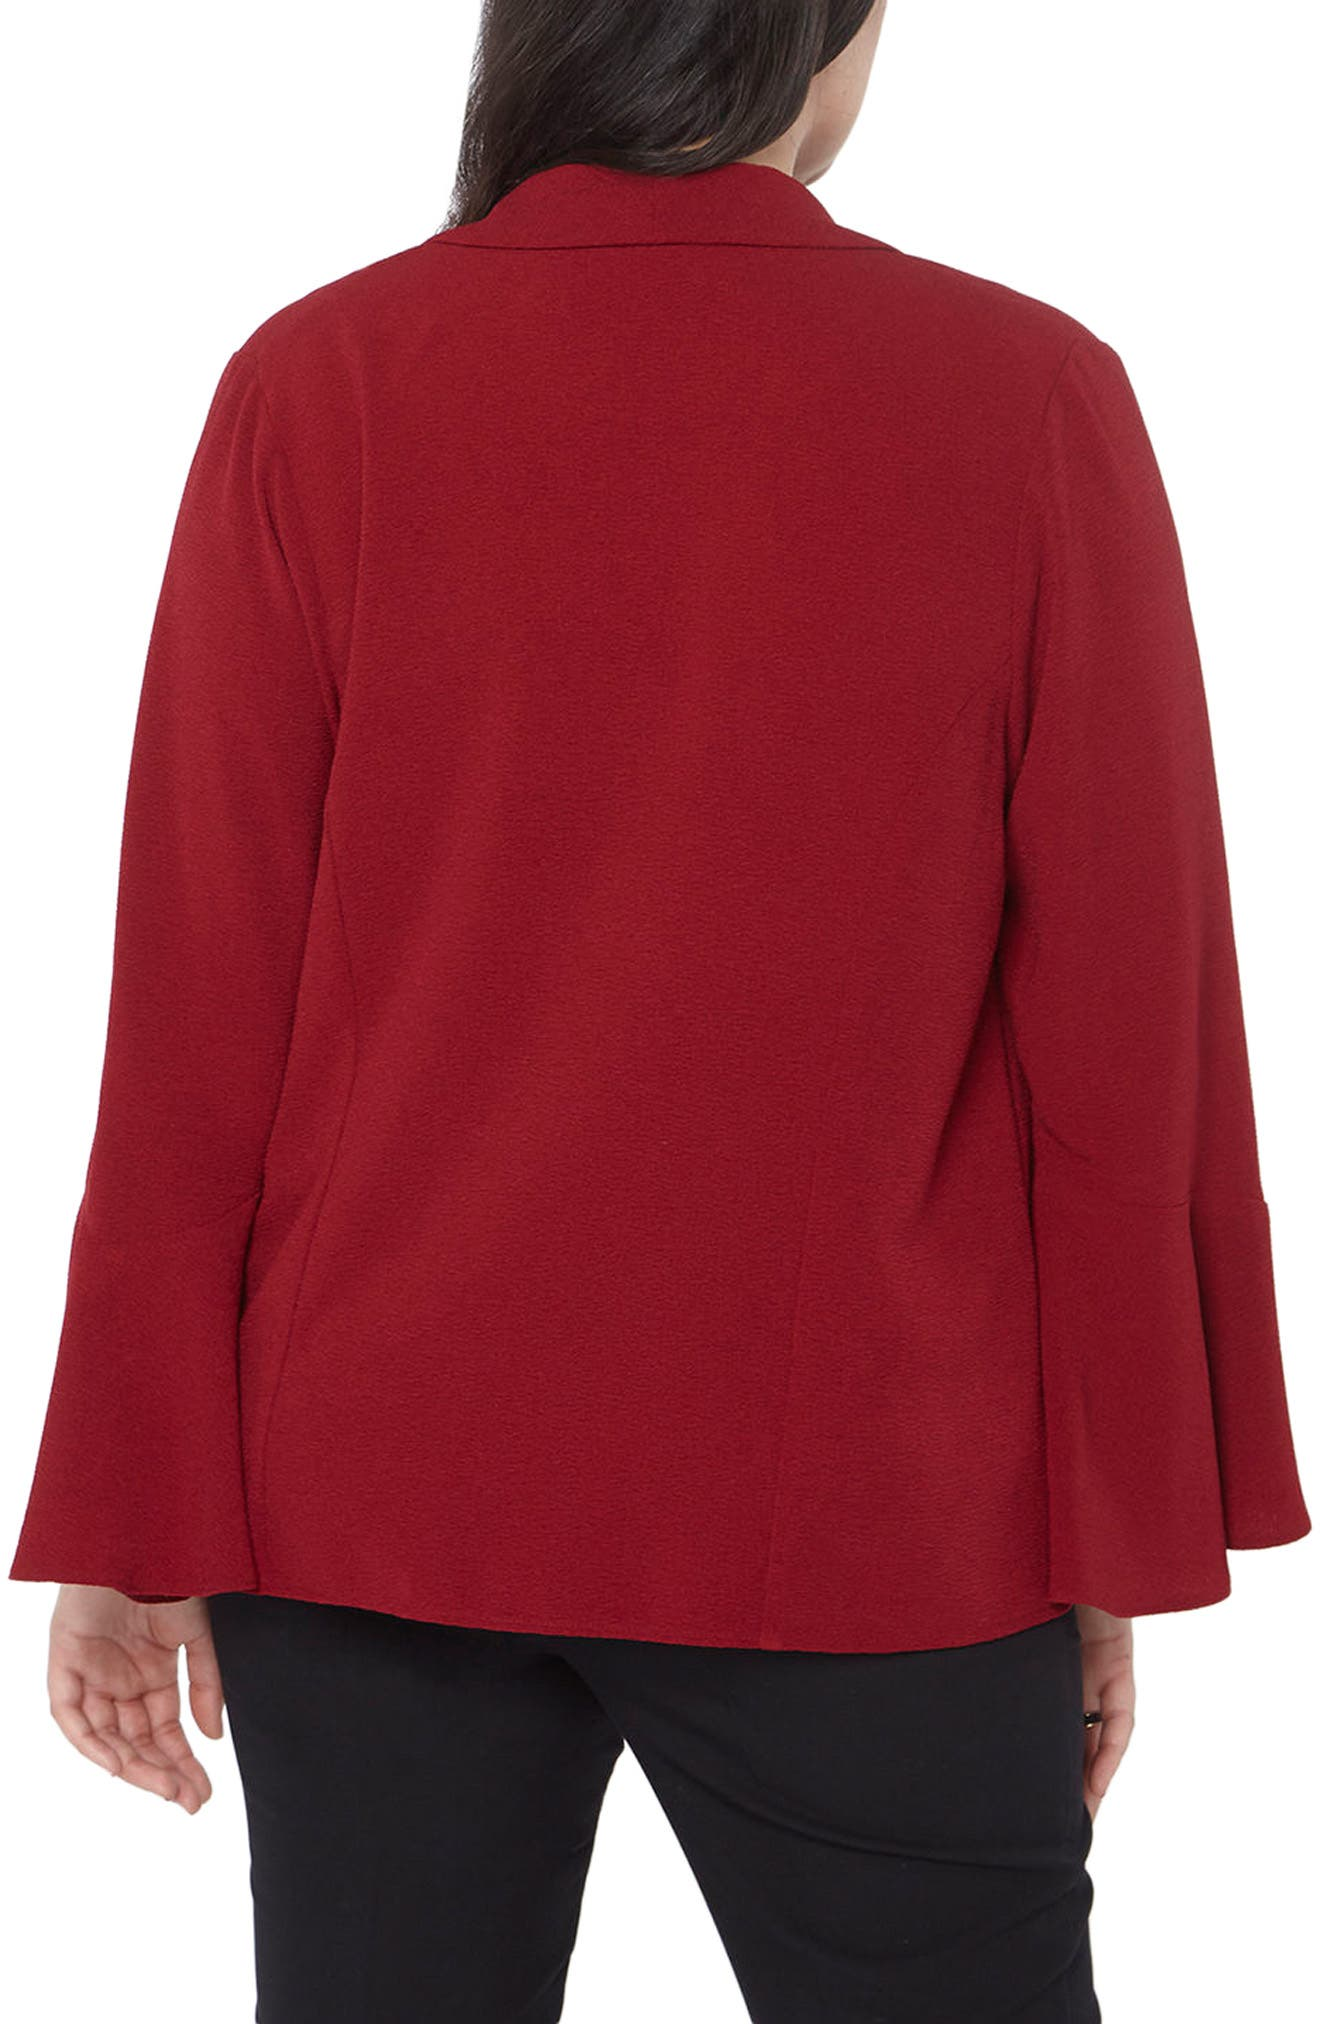 Bell Sleeve Crepe Jacket,                             Alternate thumbnail 2, color,                             600